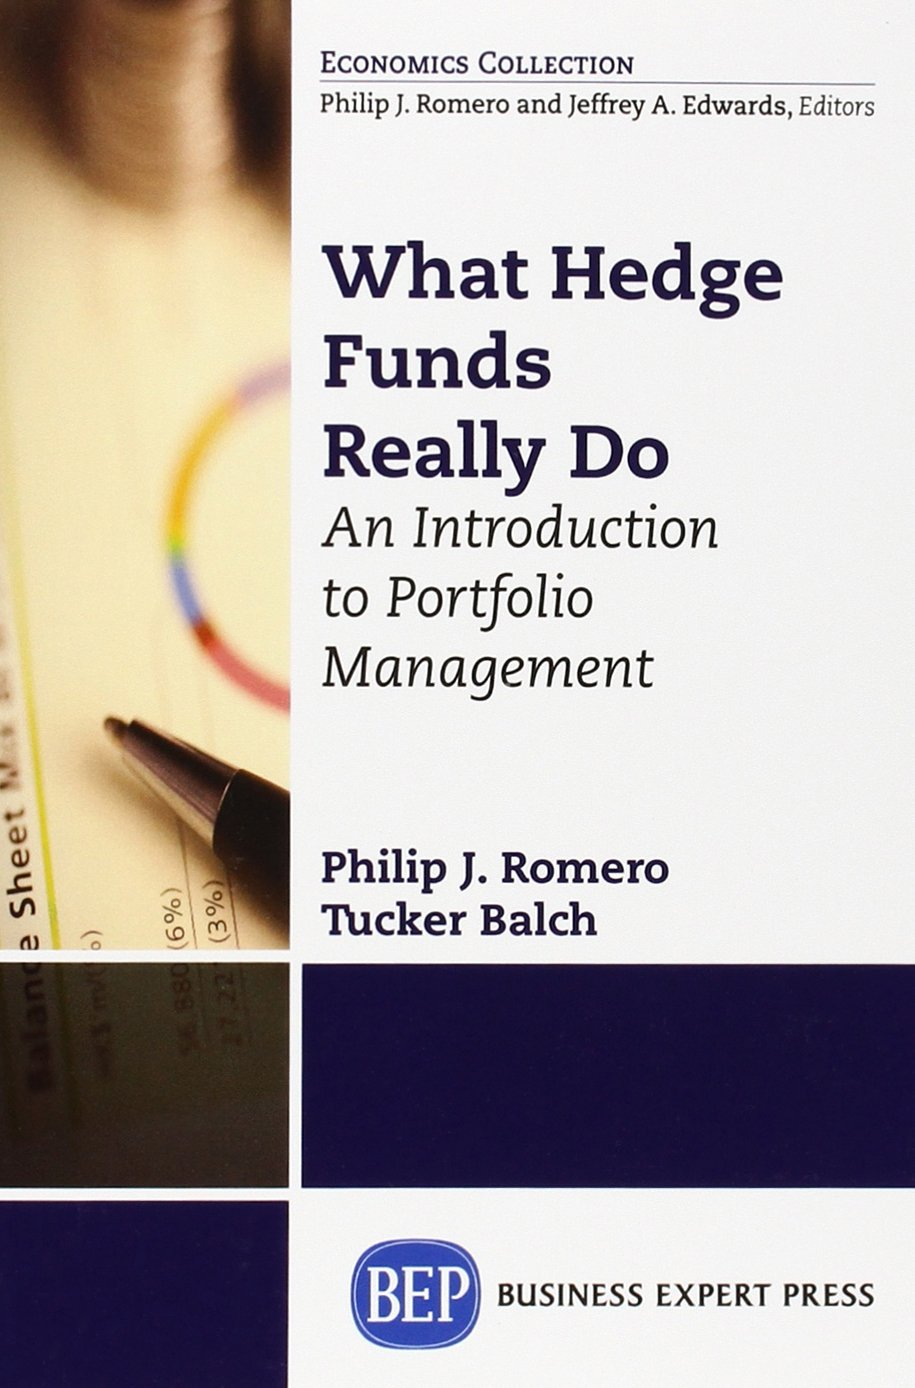 What Hedge Funds Really Do: An Introduction to Portfolio Management PDF